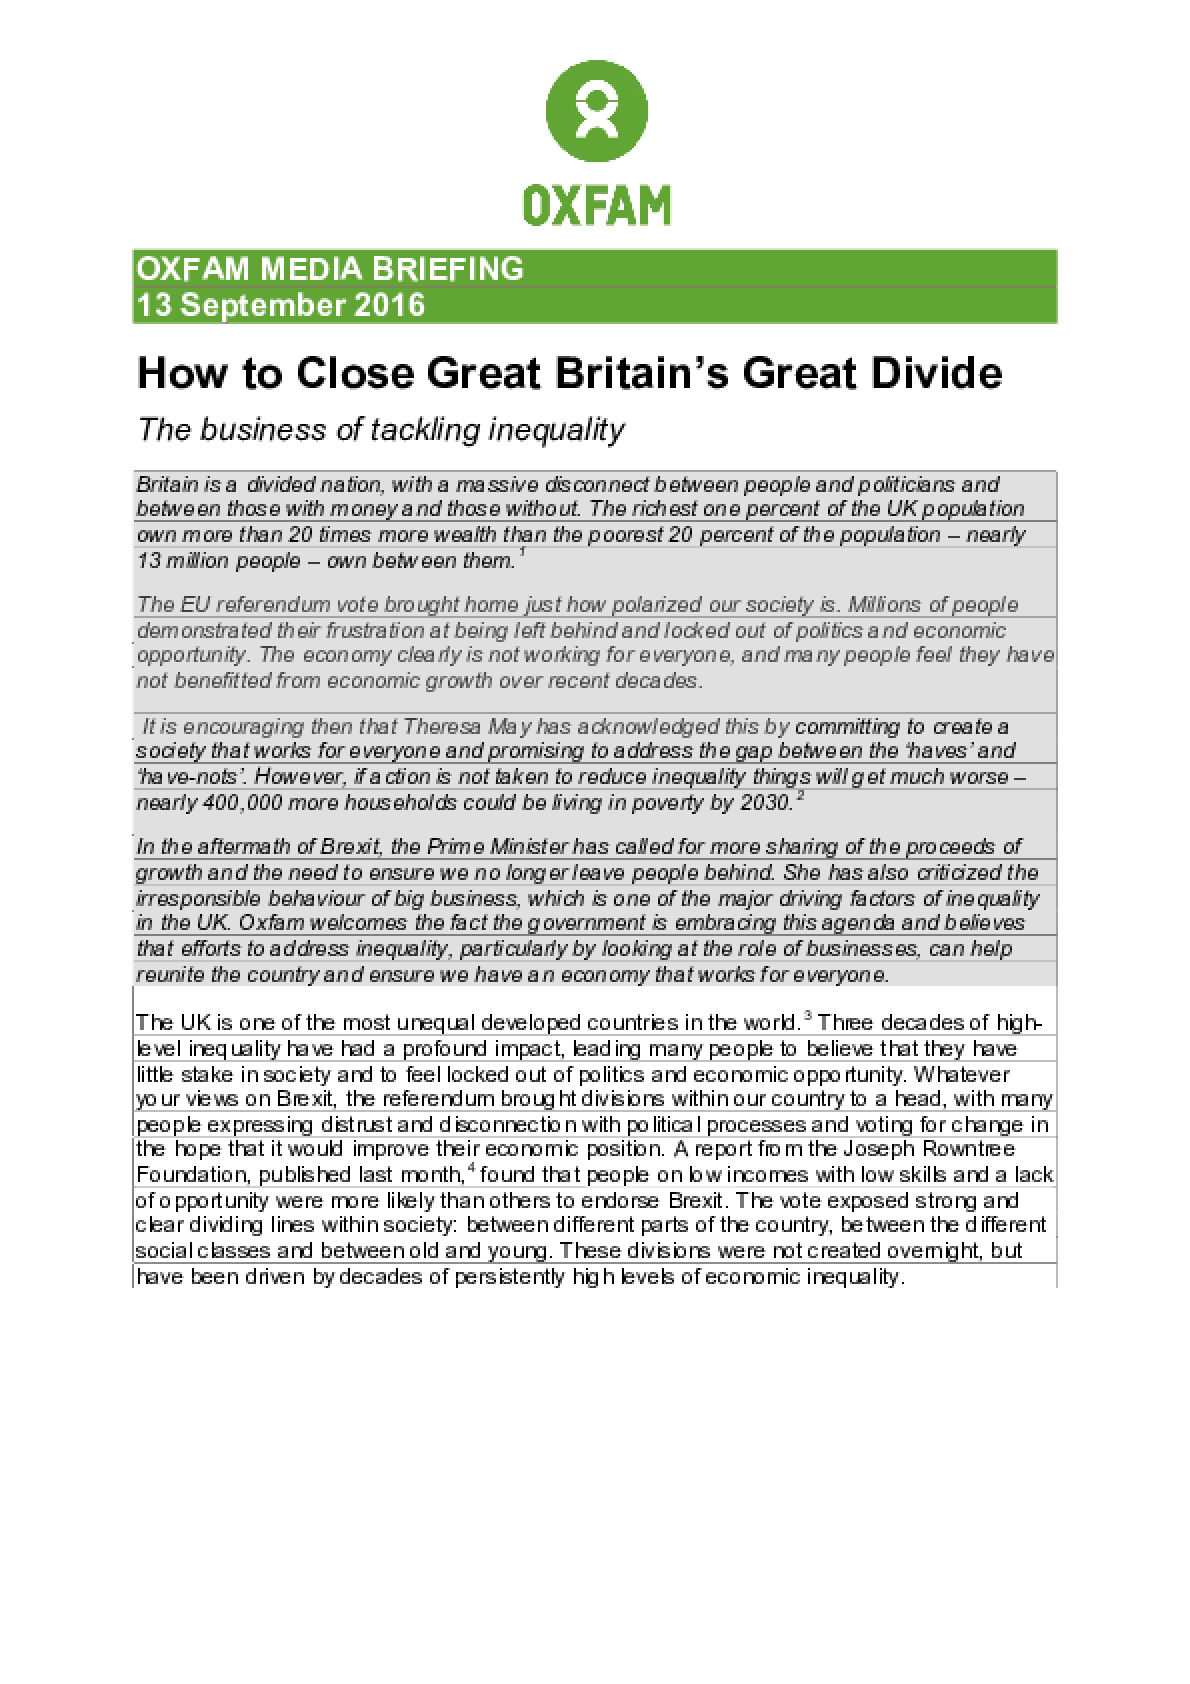 How to Close Great Britain's Great Divide: The Business of Tackling Inequality